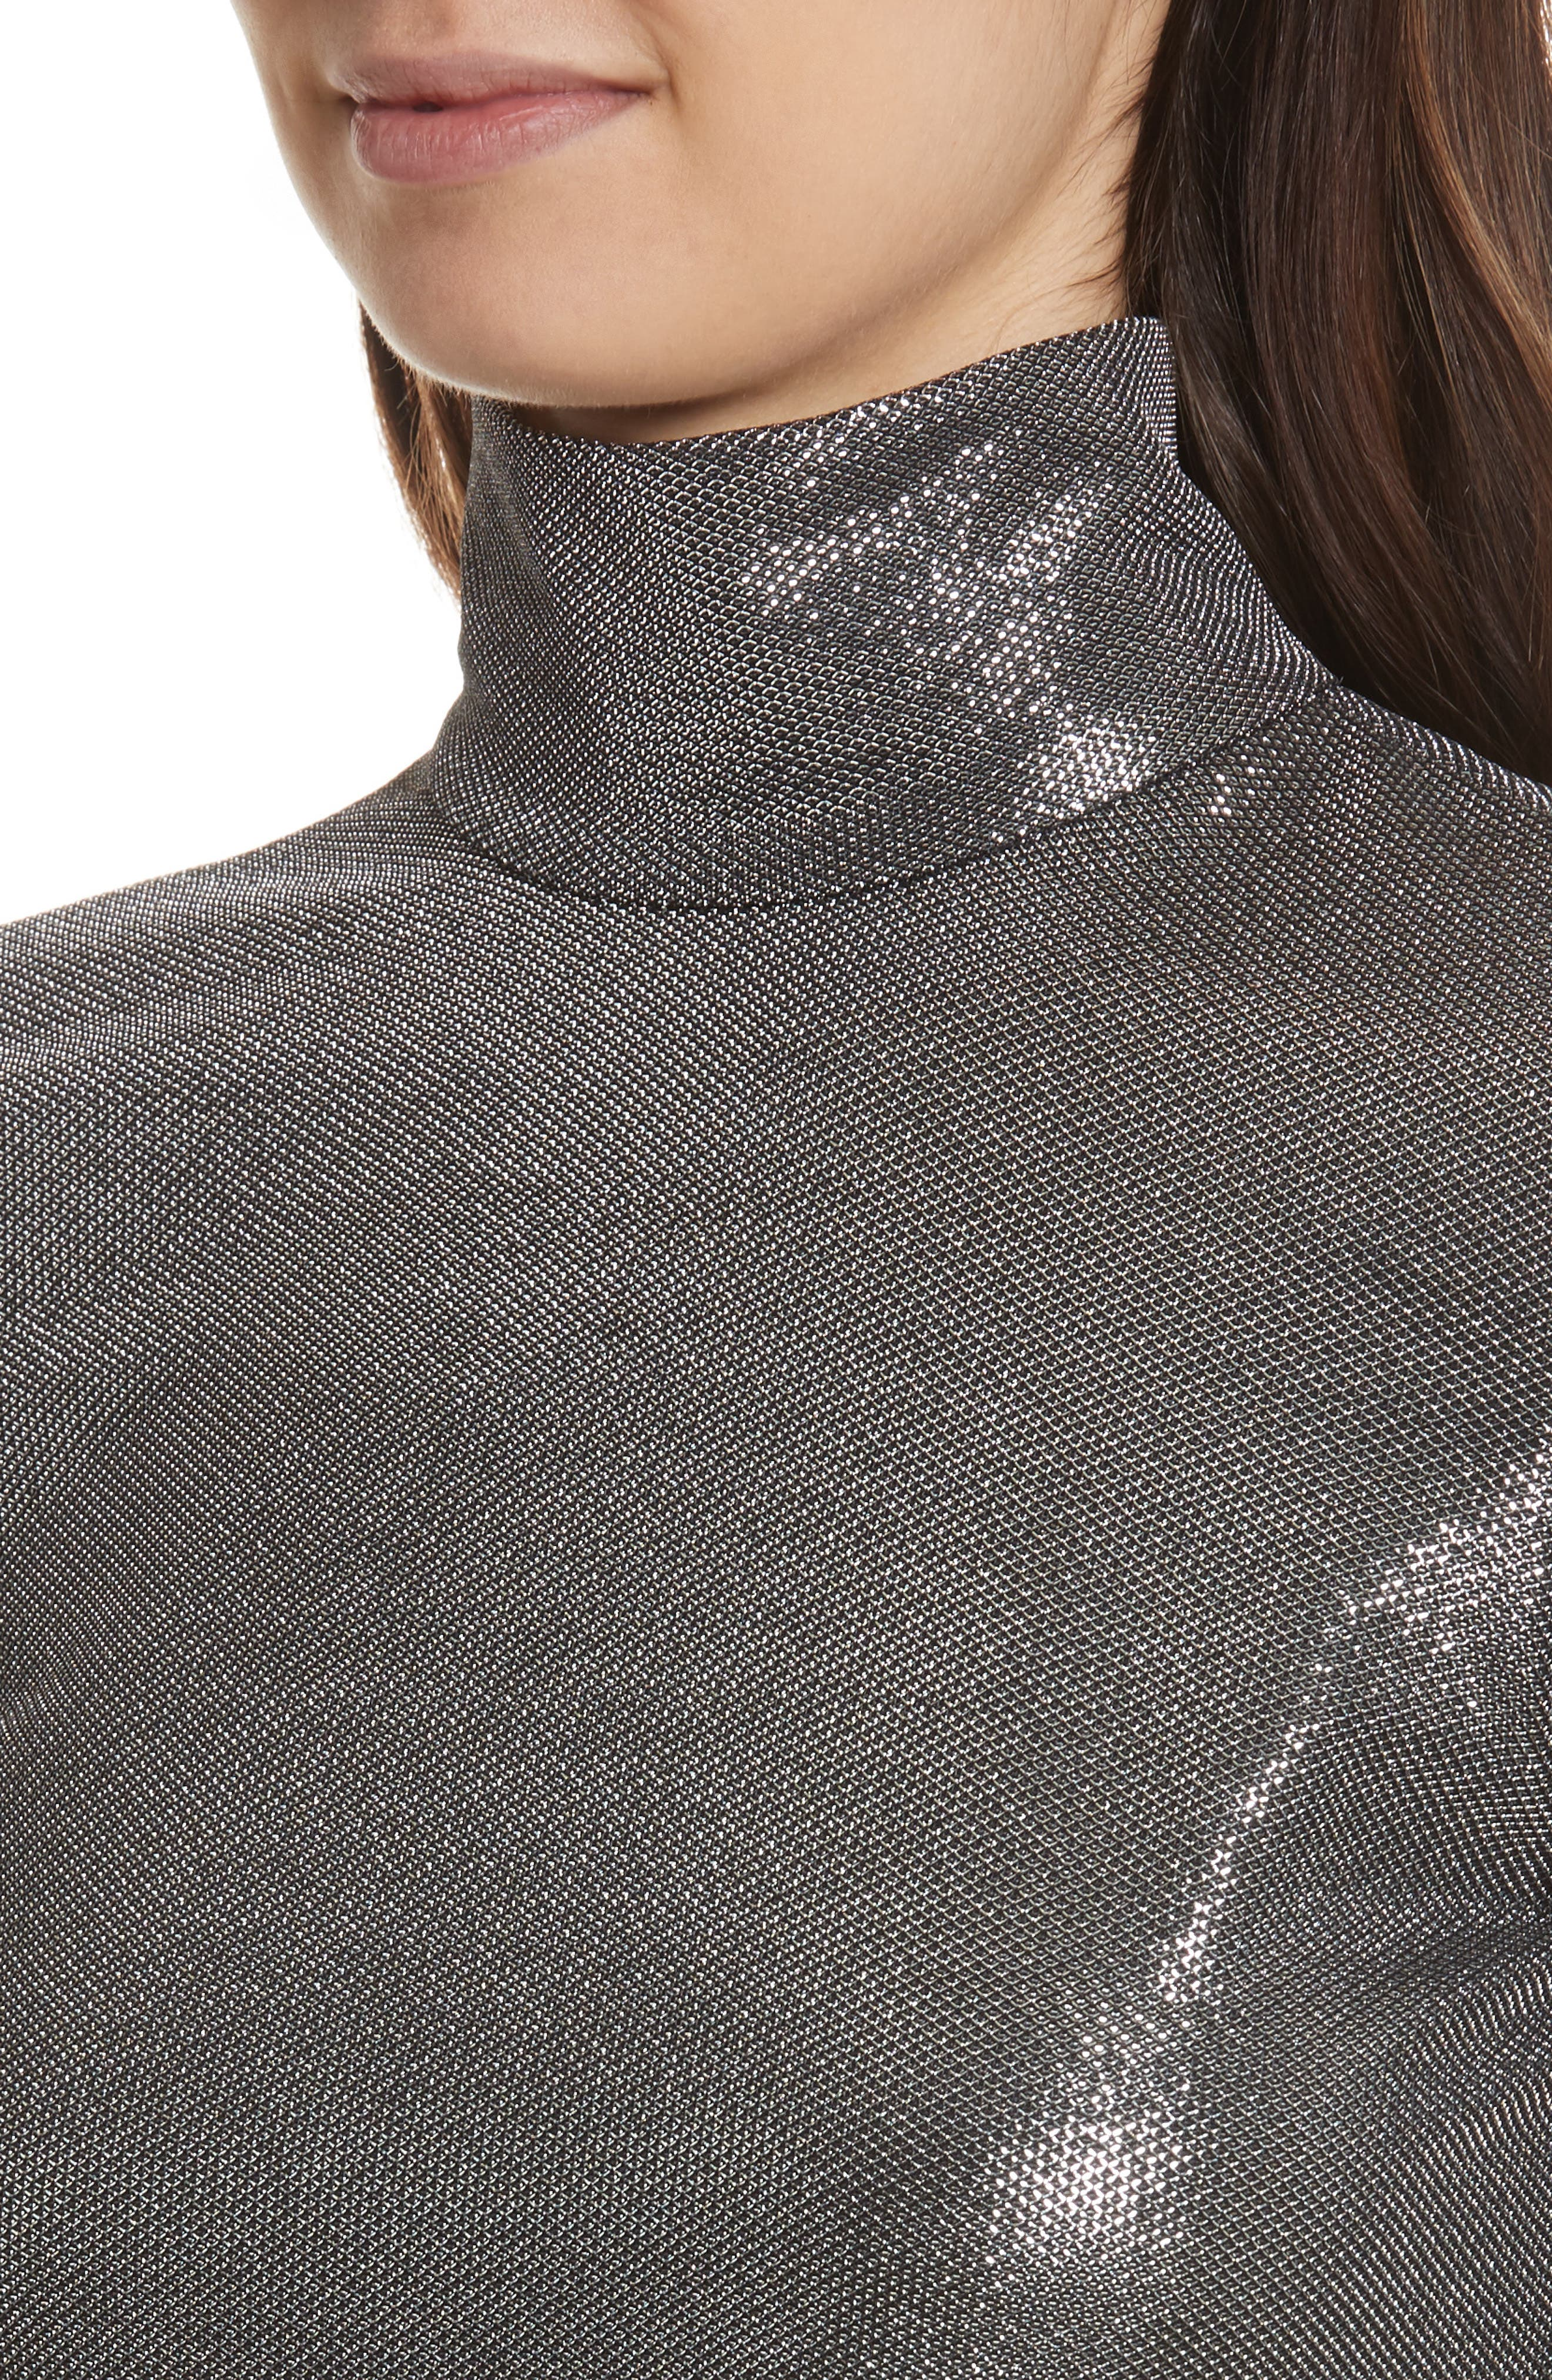 Silver Turtleneck Top,                             Alternate thumbnail 4, color,                             Antique Silver